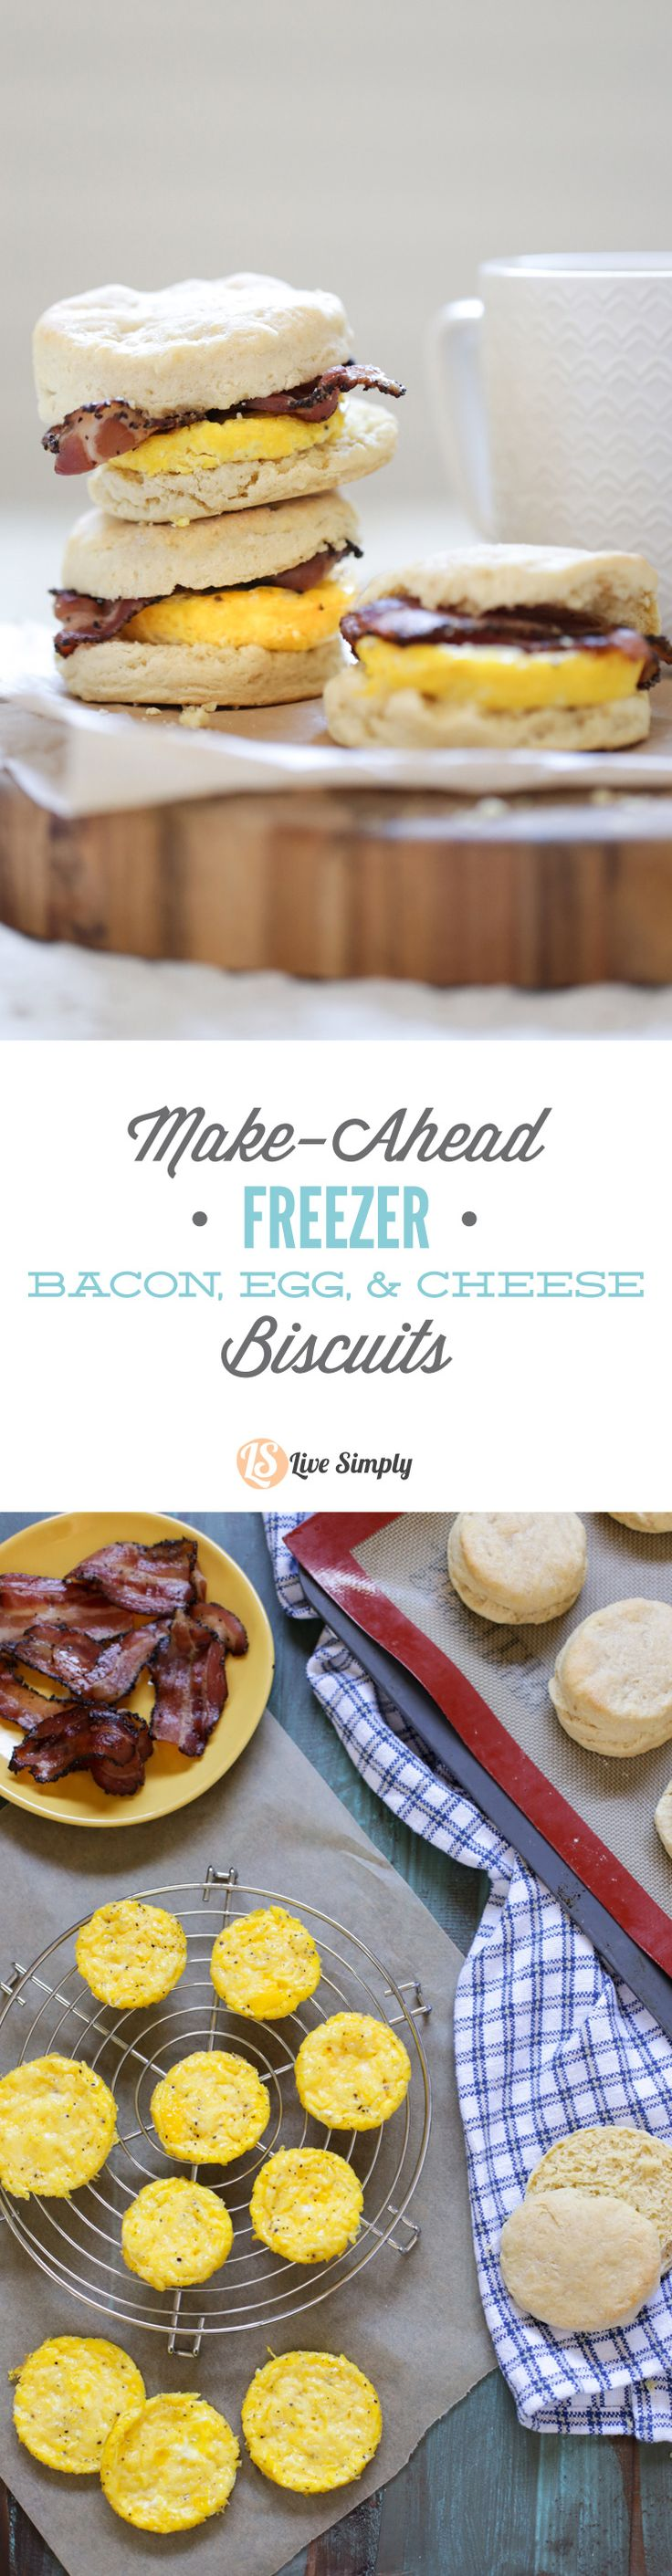 Homemade (real food style) bacon, egg, and cheese biscuits! Zero boxed or processed food ingredients. Plus, these sandwiches can be made in advance and frozen for later. The perfect busy breakfast meal.